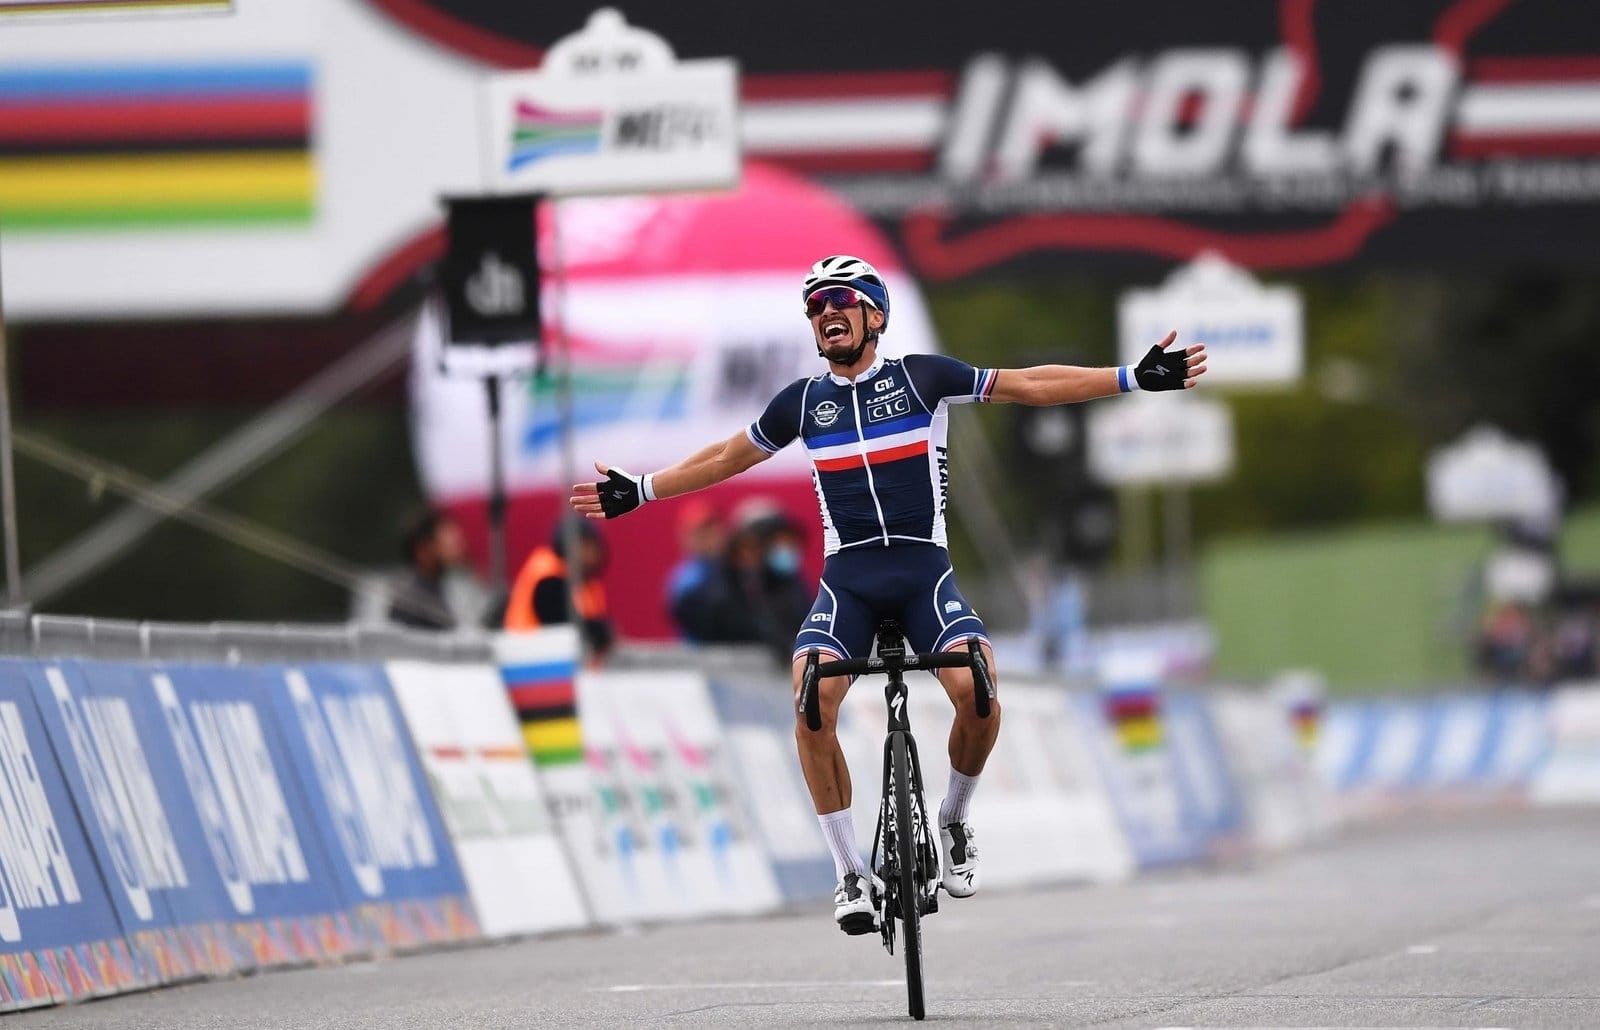 WORLD CHAMPIONSHIPS 2021: MEN'S ROAD RACE PREVIEW